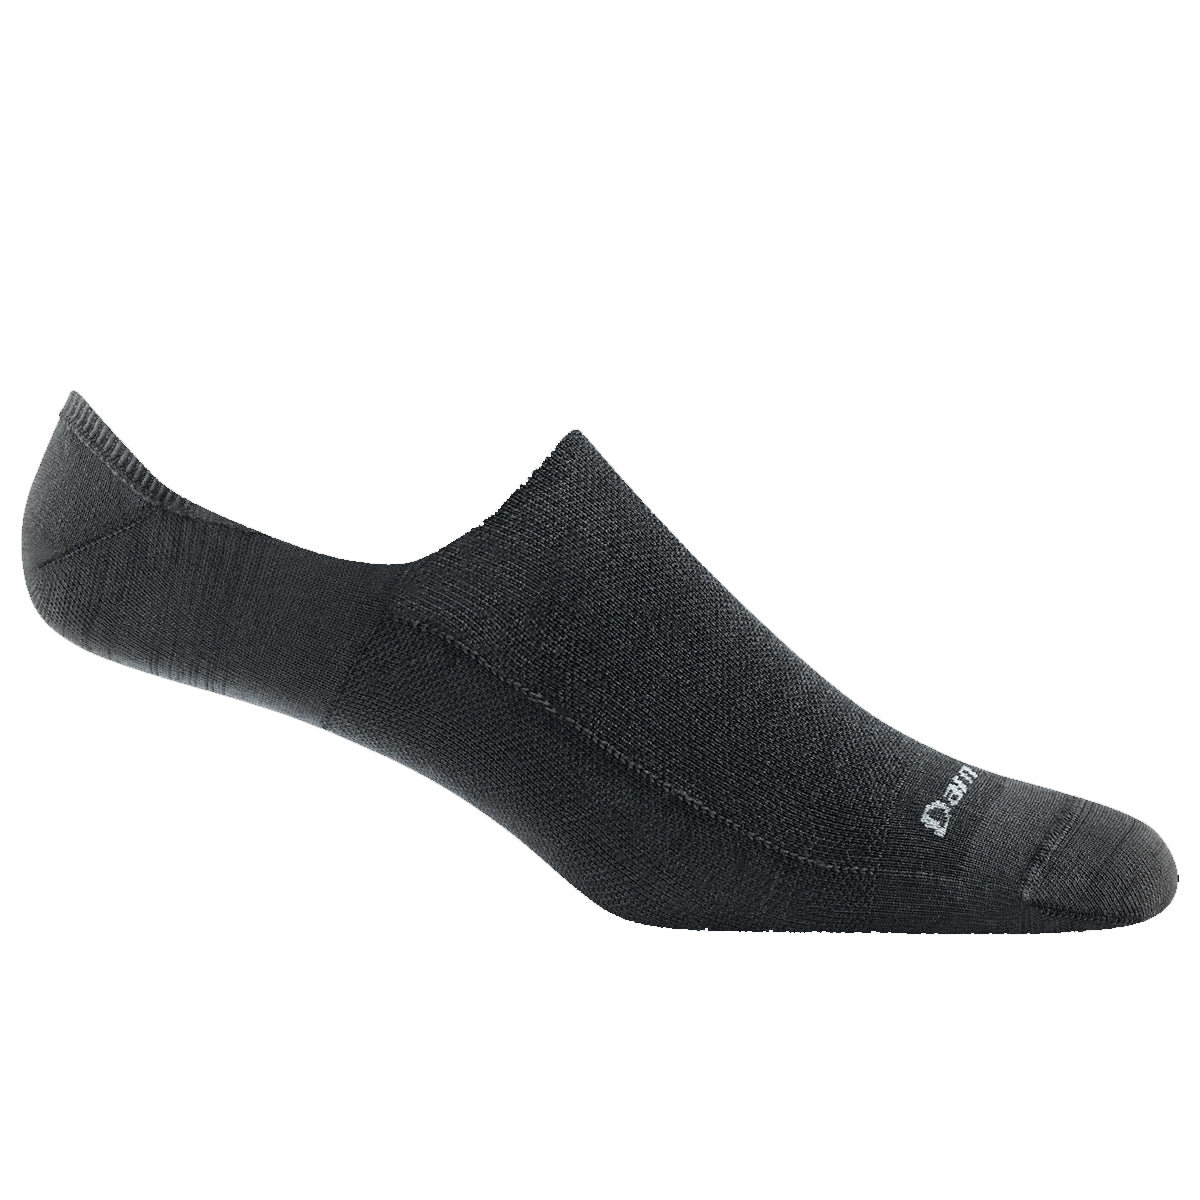 Darn Tough Men's Topless Solid No Show Hidden Lightweight Lifestyle Sock - Black